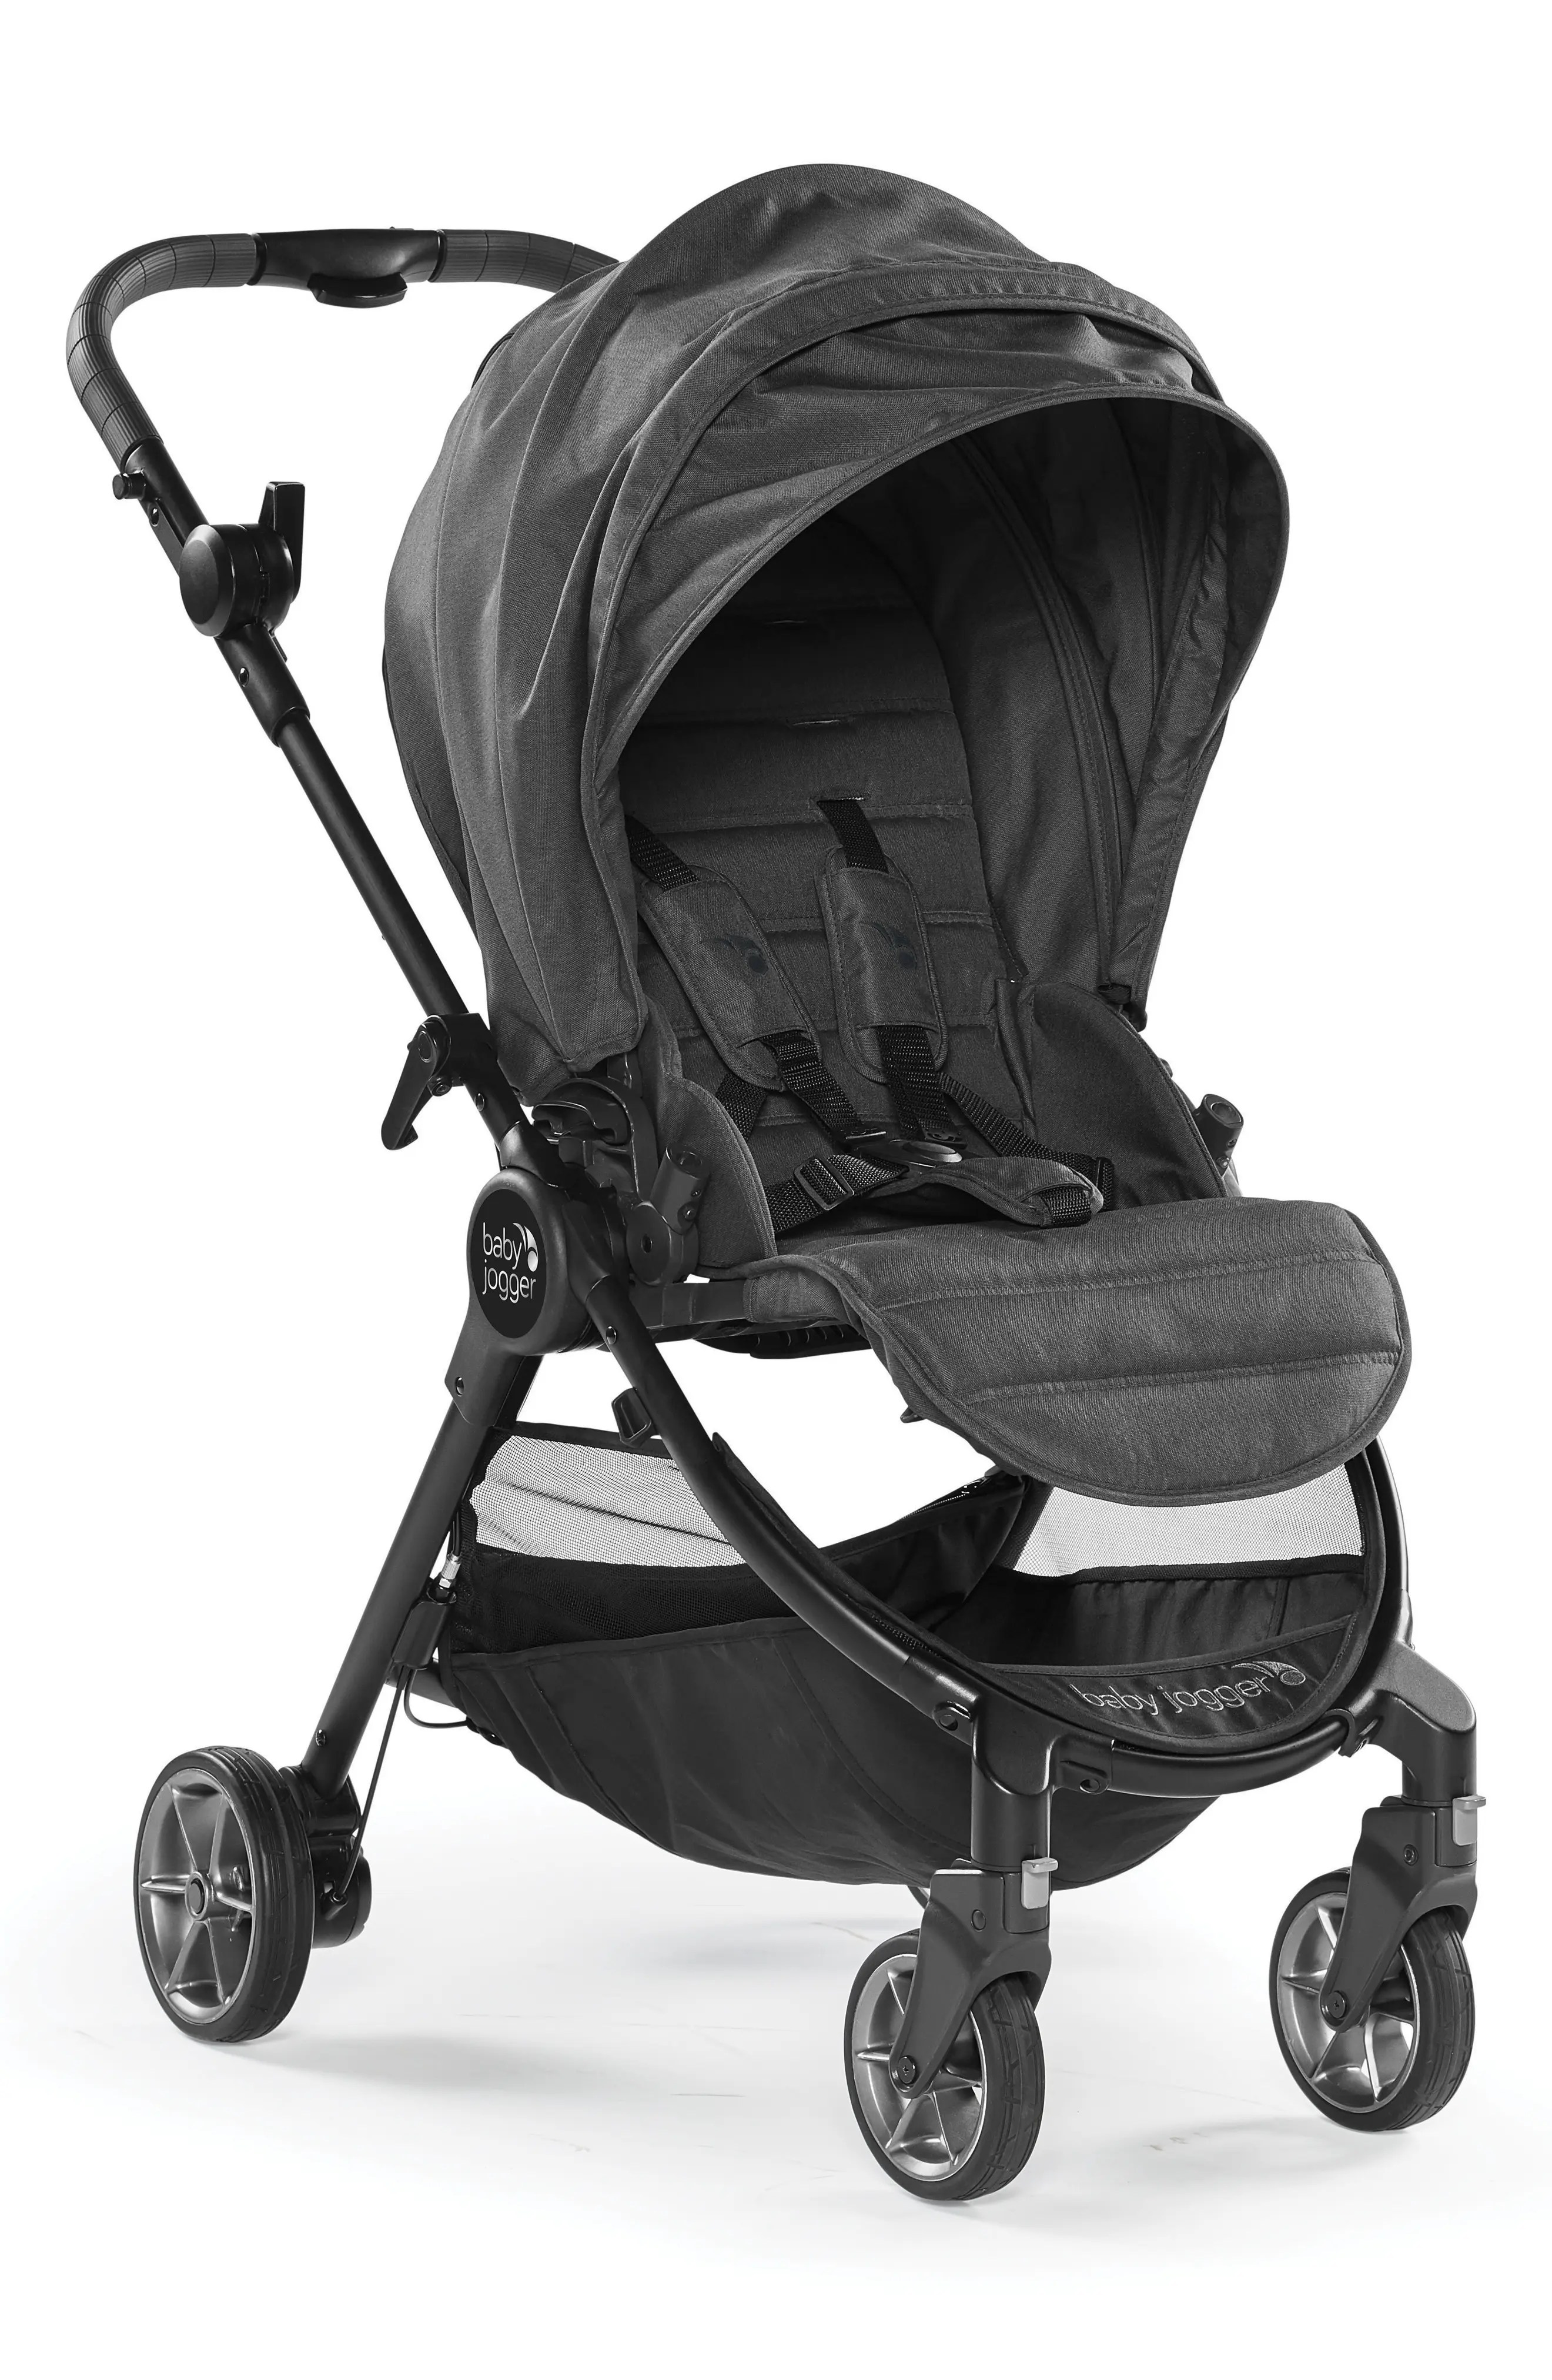 Oyster Double Pram Mothercare The Best Buggies That Fold With The Seat Attached 2019